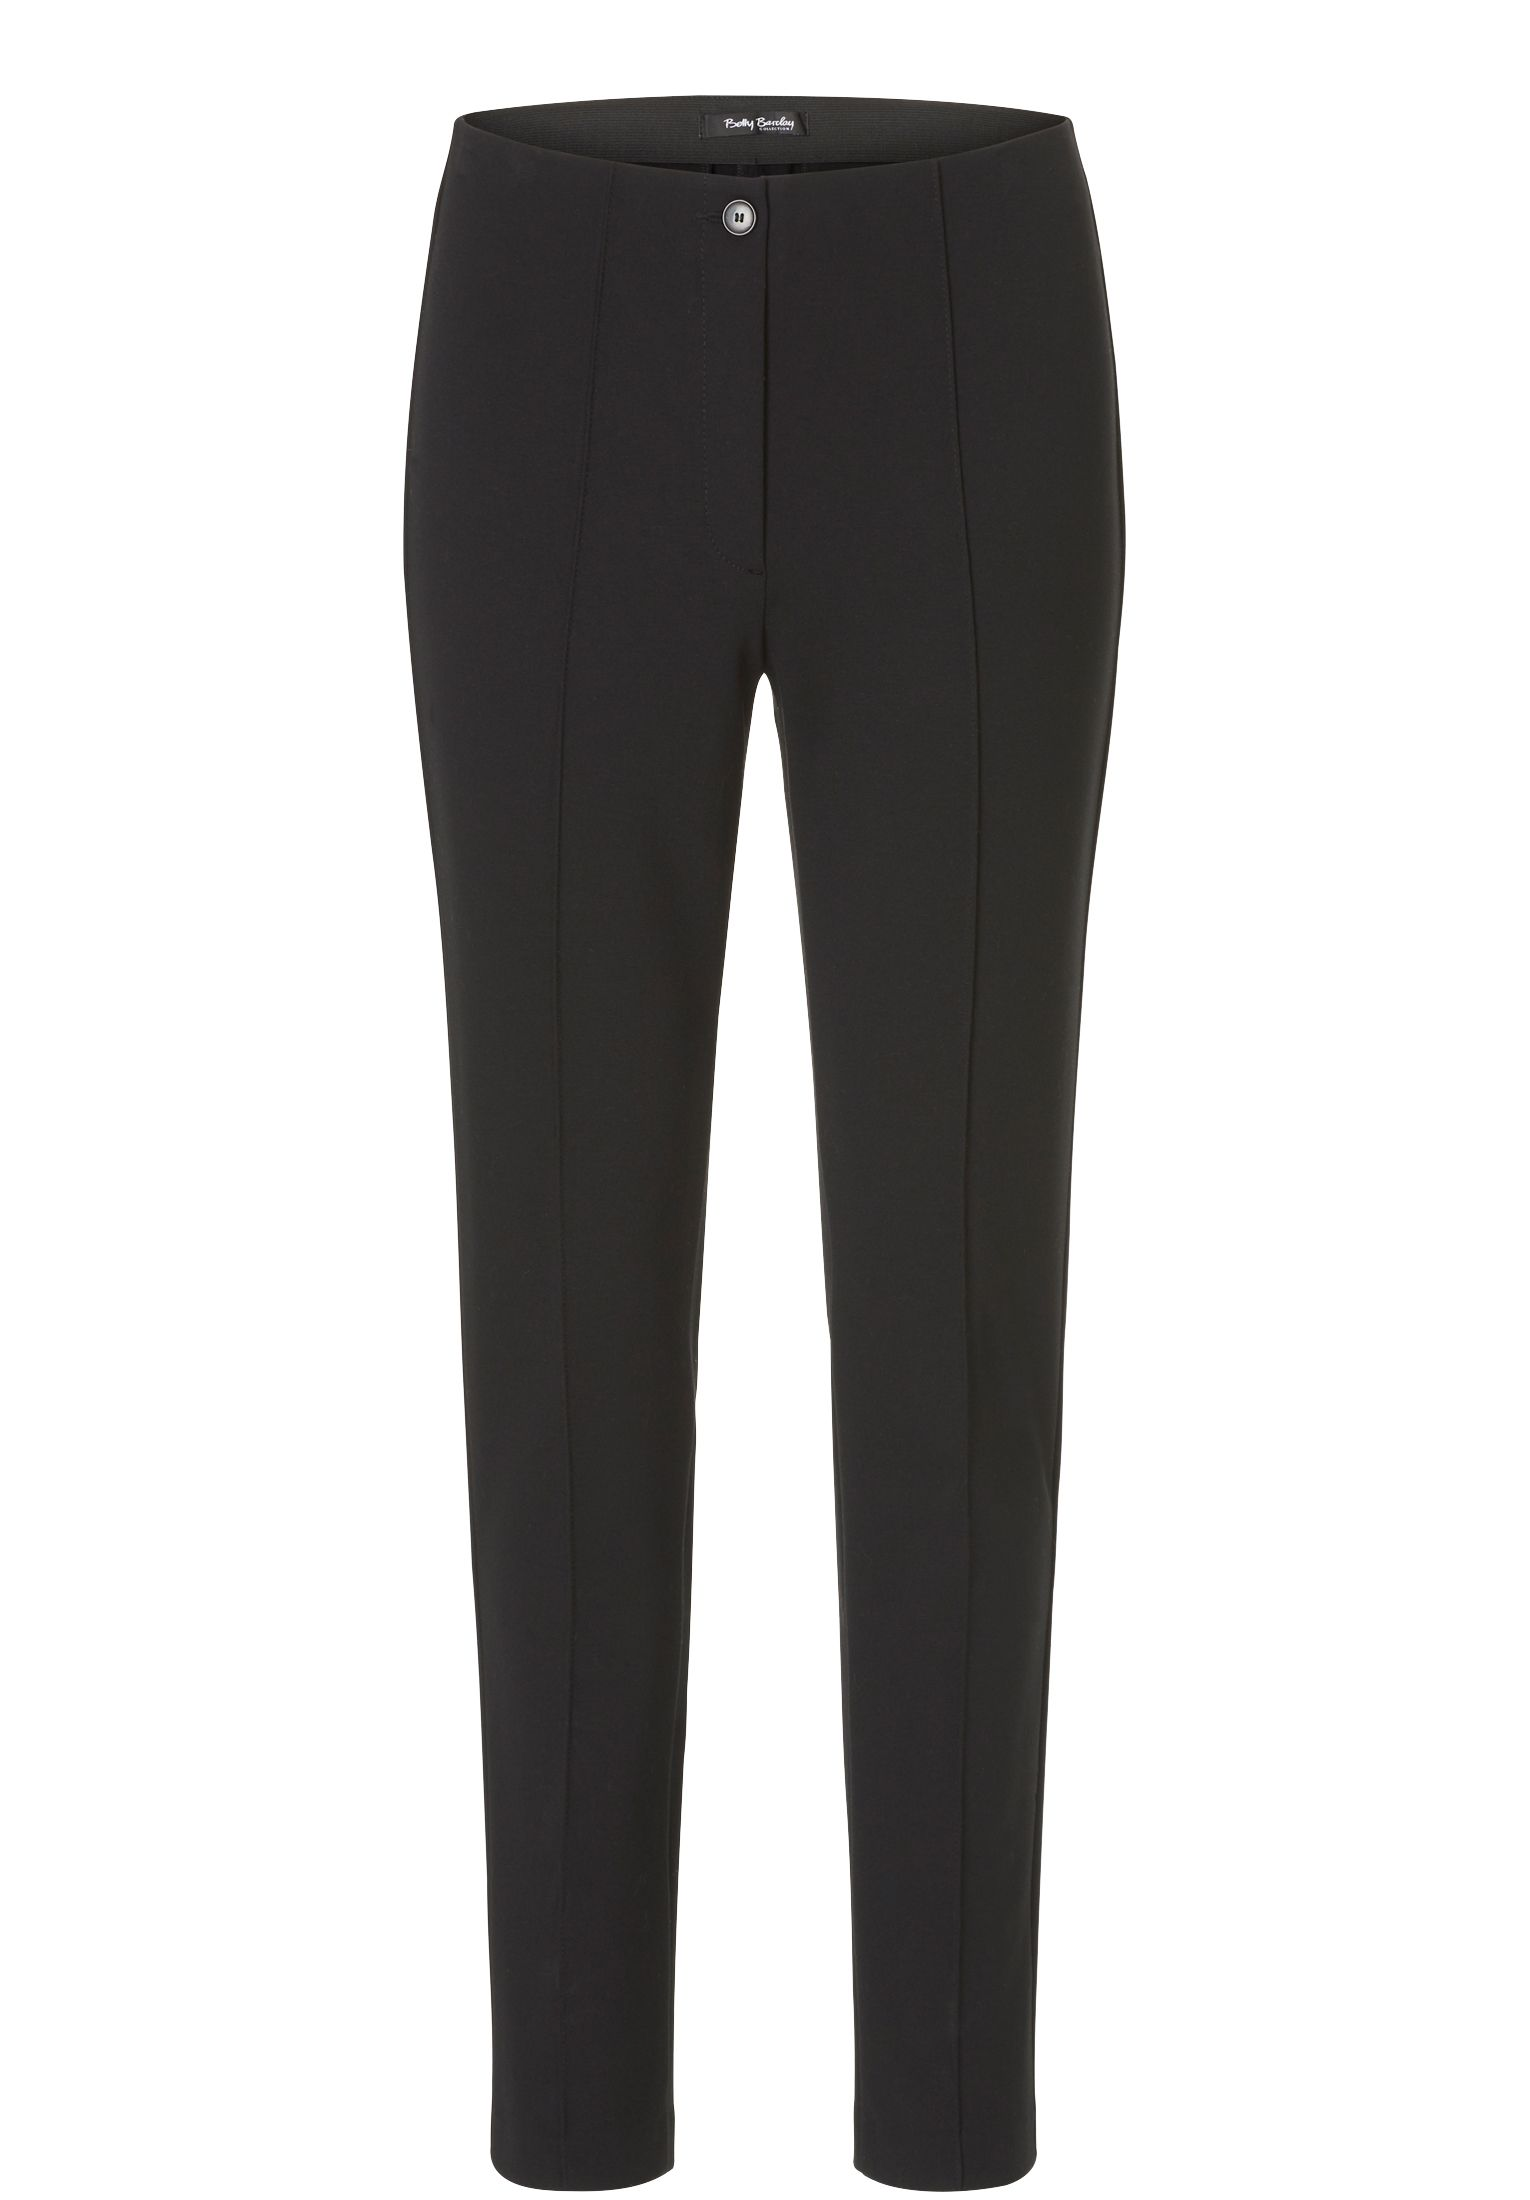 Betty Barclay Jersey trousers, Black